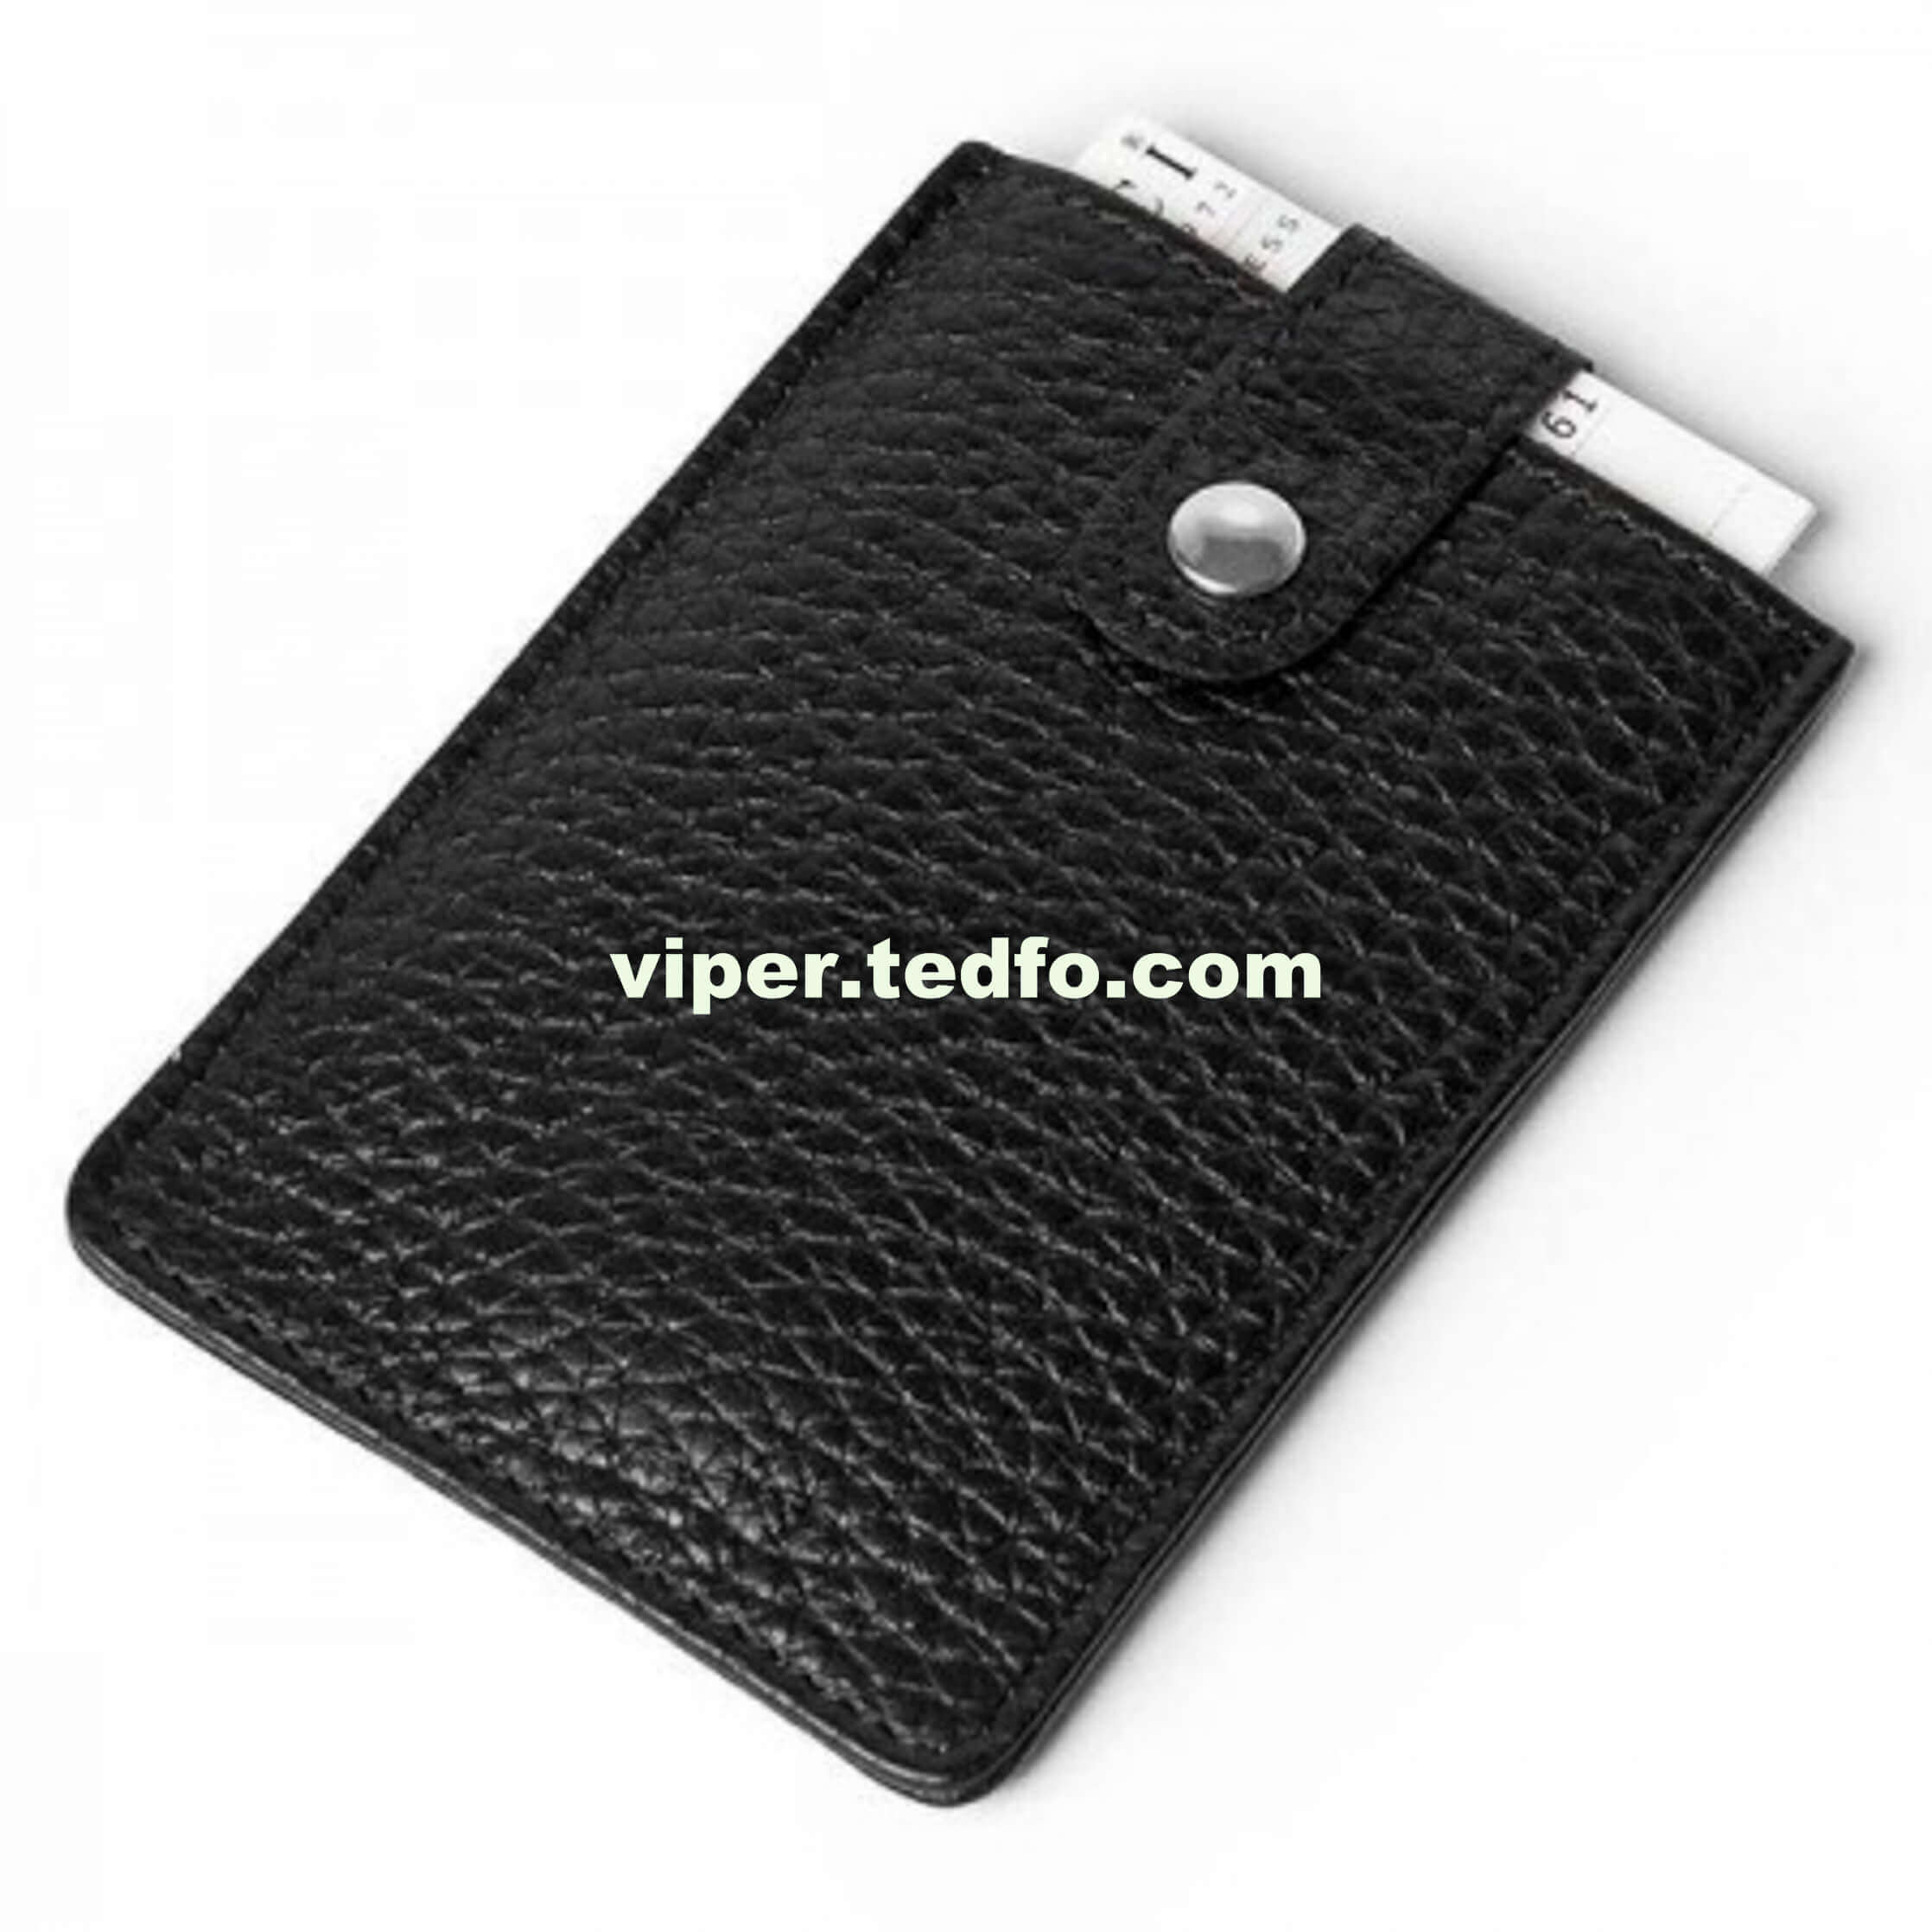 Best leather card holder from bangladesh tedfo leatherblack card holderwholesale leather manufacturerbusiness card holdervisiting card reheart Gallery